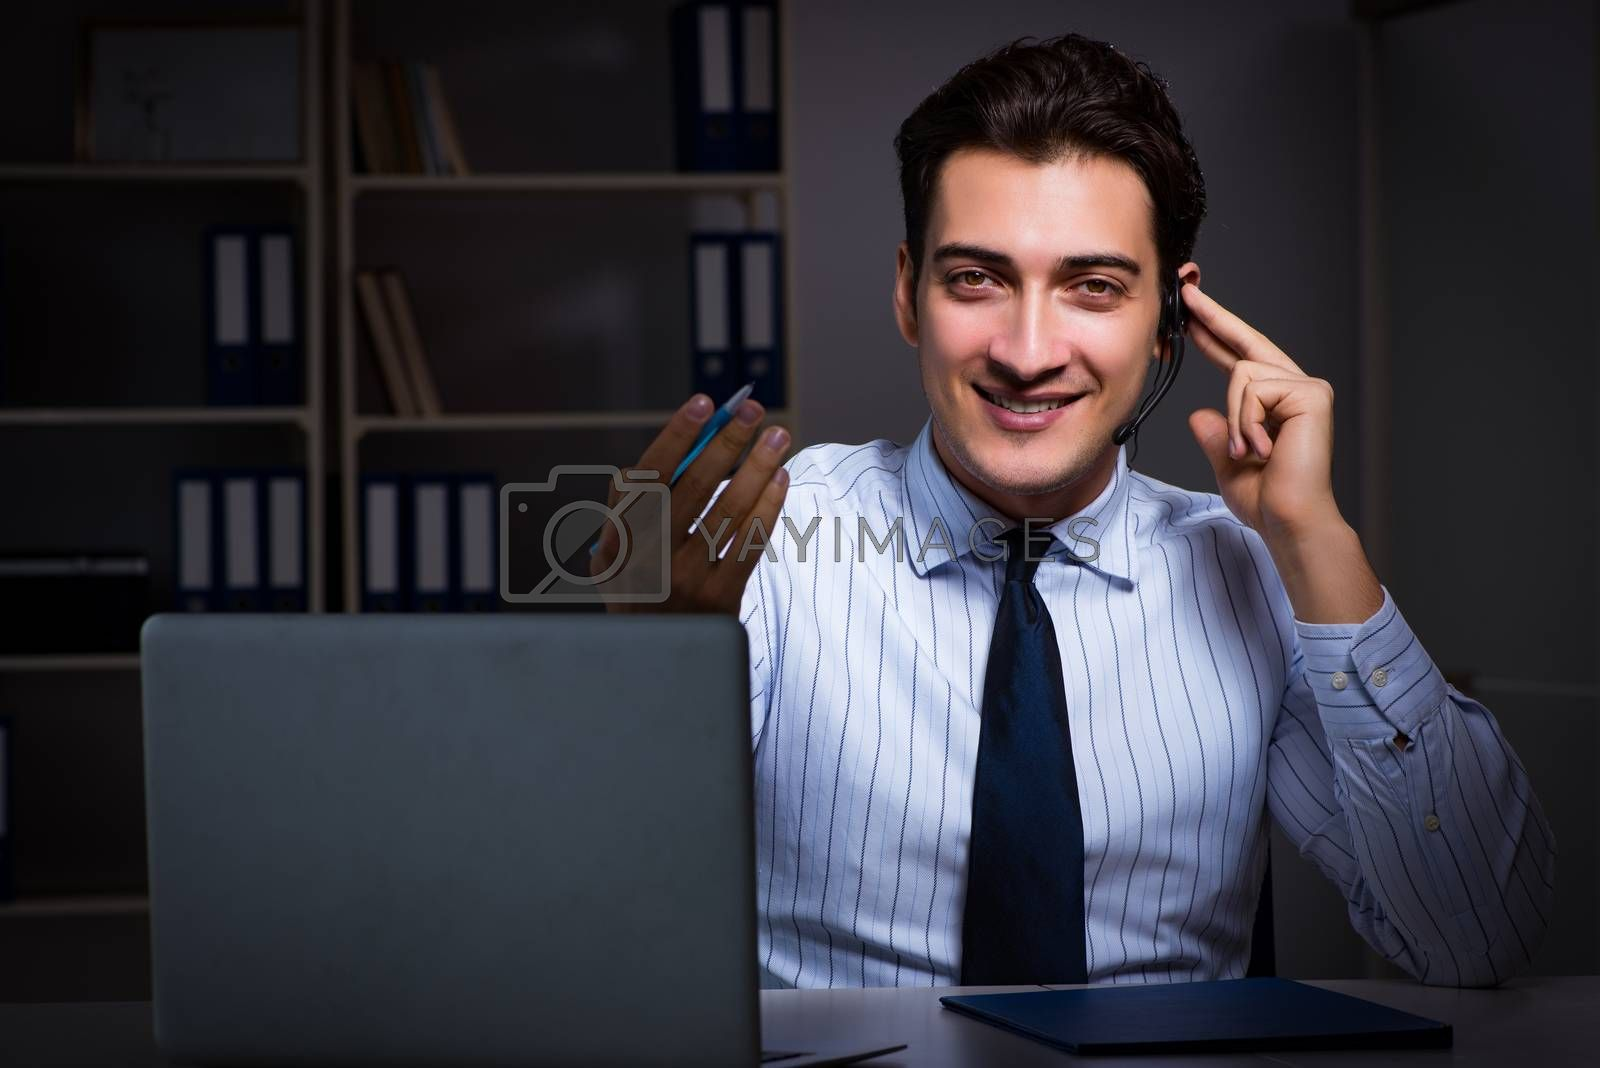 Call center operator talking to customer during night shift